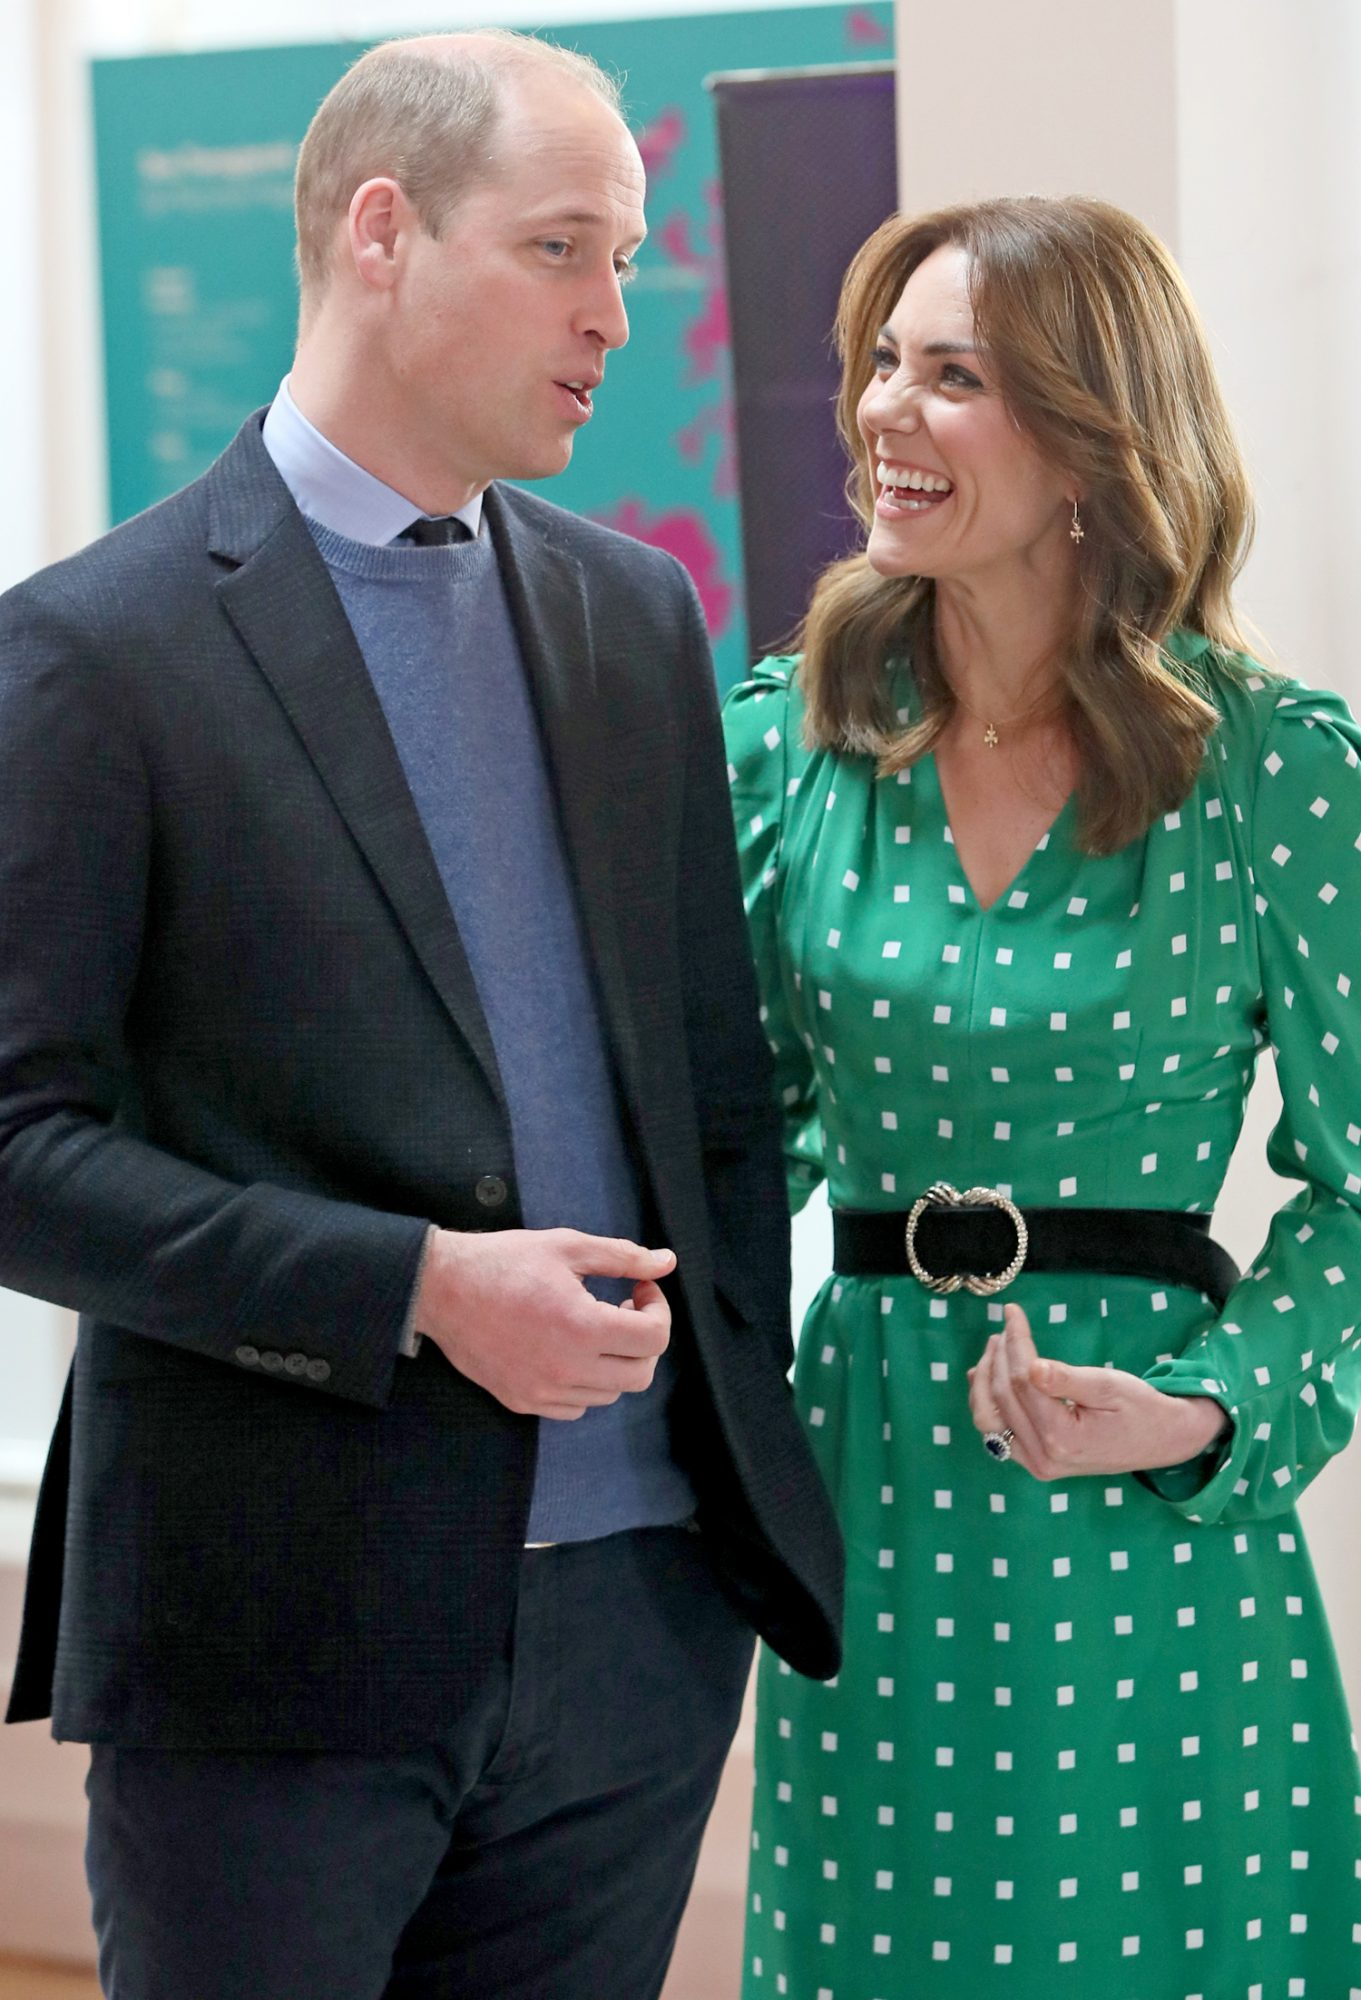 The Duke and Duchess of Cambridge visit Galway